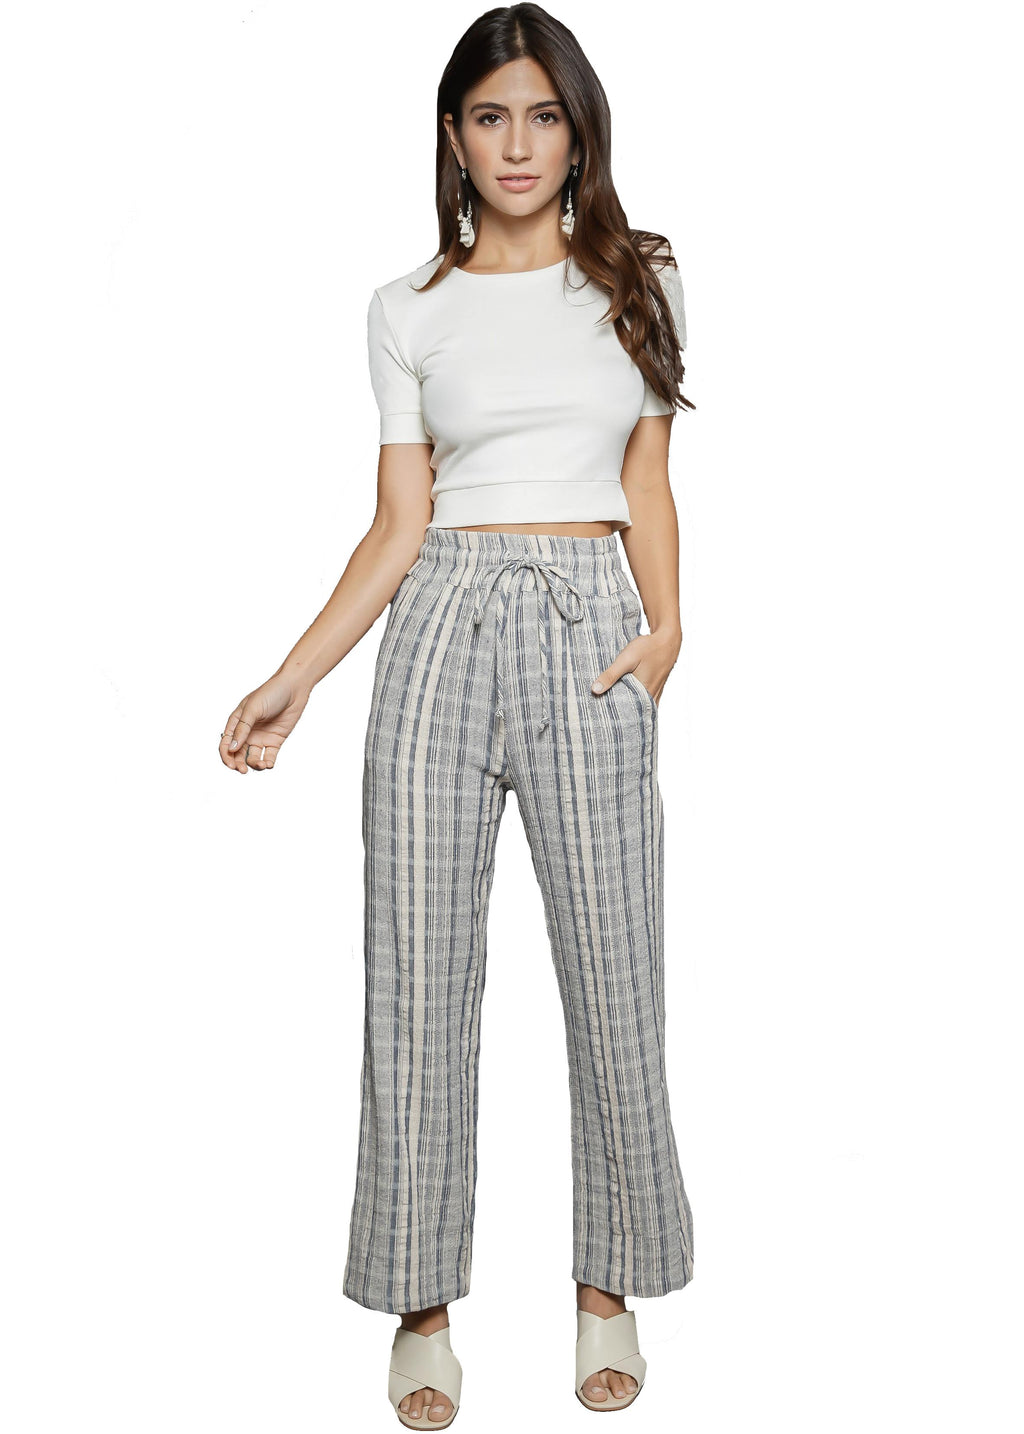 The Lady & The Sailor High Waisted Pant